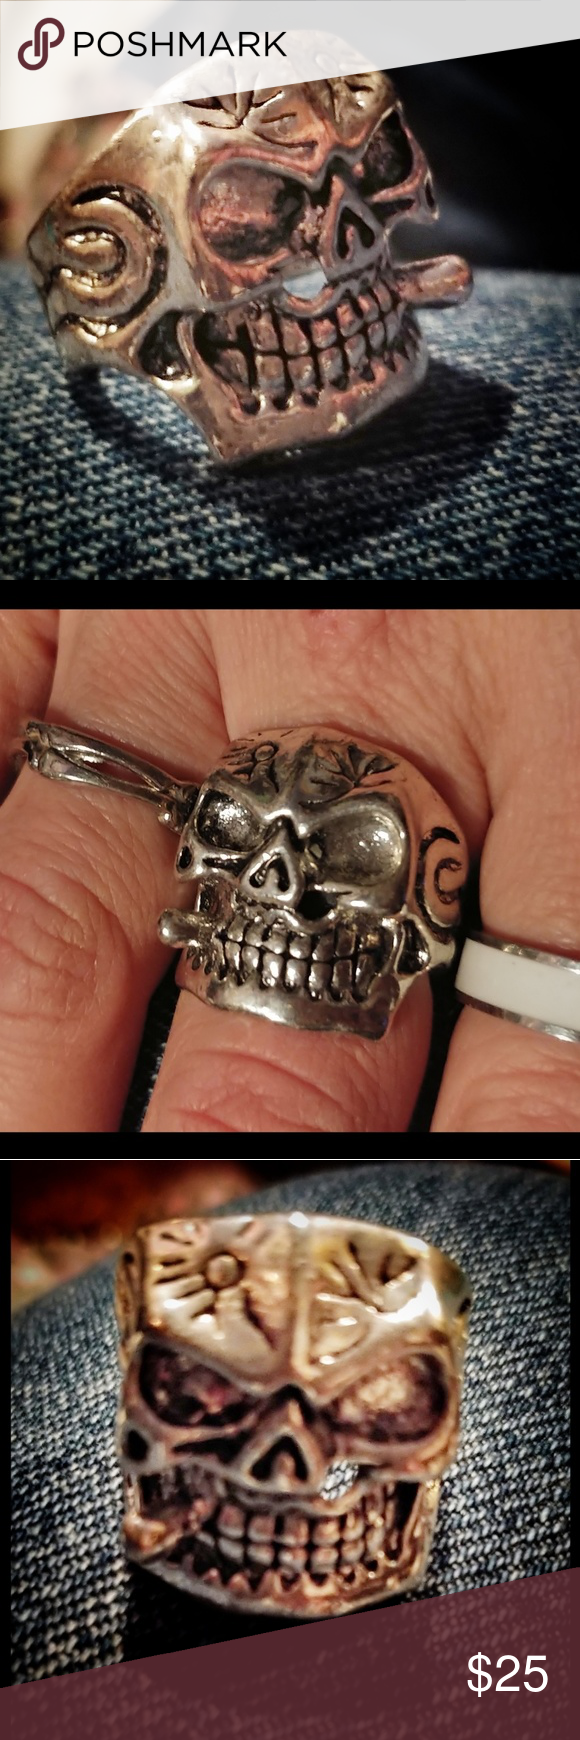 "El Gangster De Amor Stainless Steel Ring BRAND NEW Heavy Guage Stainless Steel ""El Gangster de Amor"" Smoking Skull Hardcore Ring Size 8 Vintage Jewelry Rings"